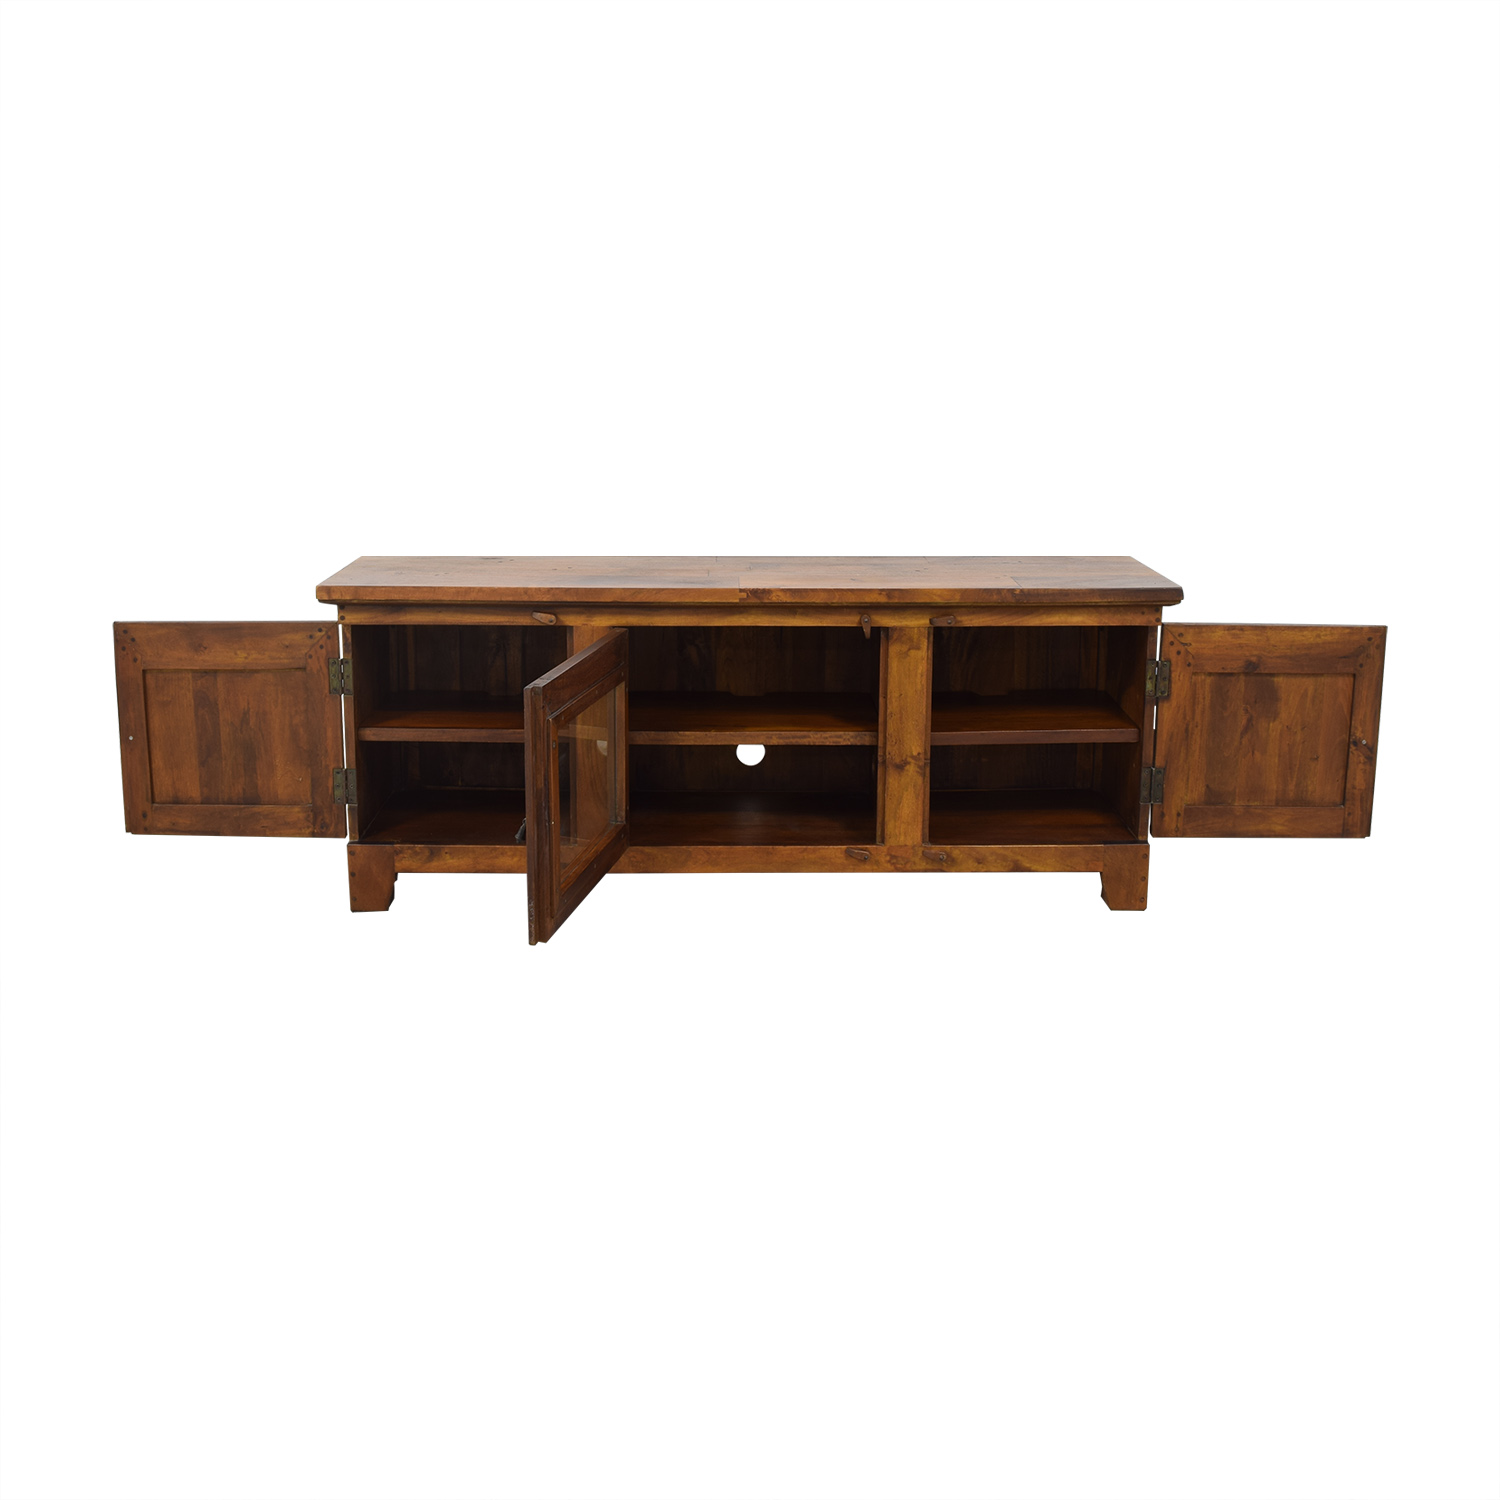 Crate & Barrel Crate & Barrel Basque Honey Media Console nj